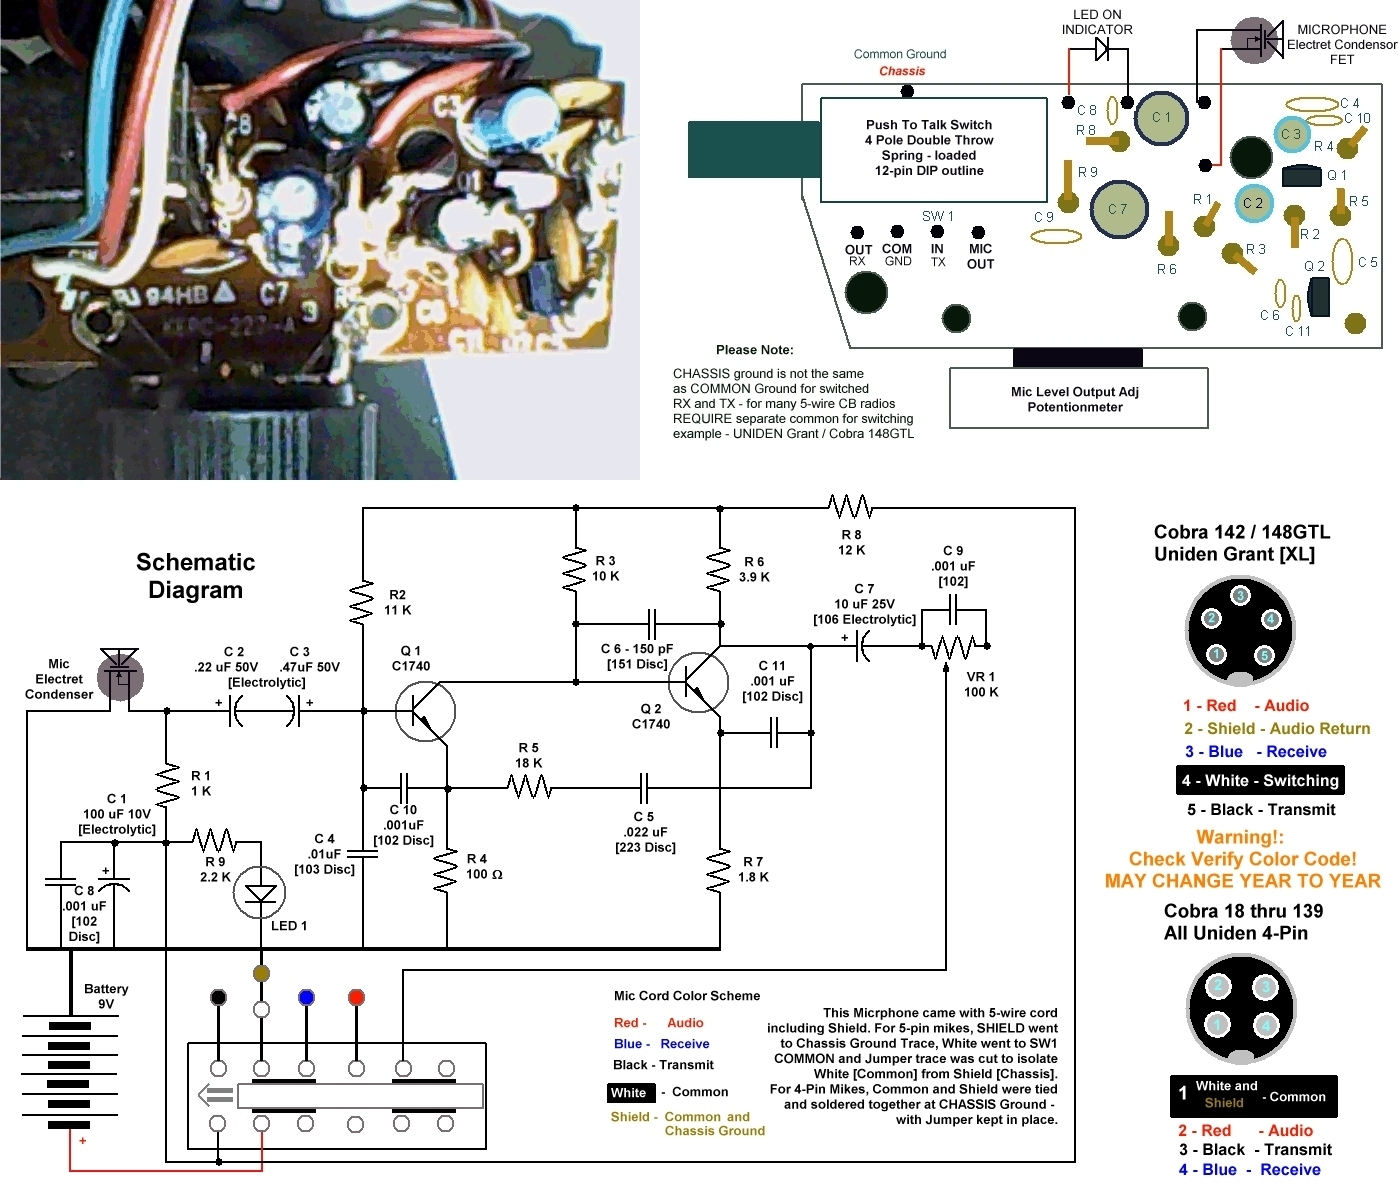 Schematic and parts layout ca 75 cobra power mike and related power microphones 5.3 Coolant Diagram at mifinder.co